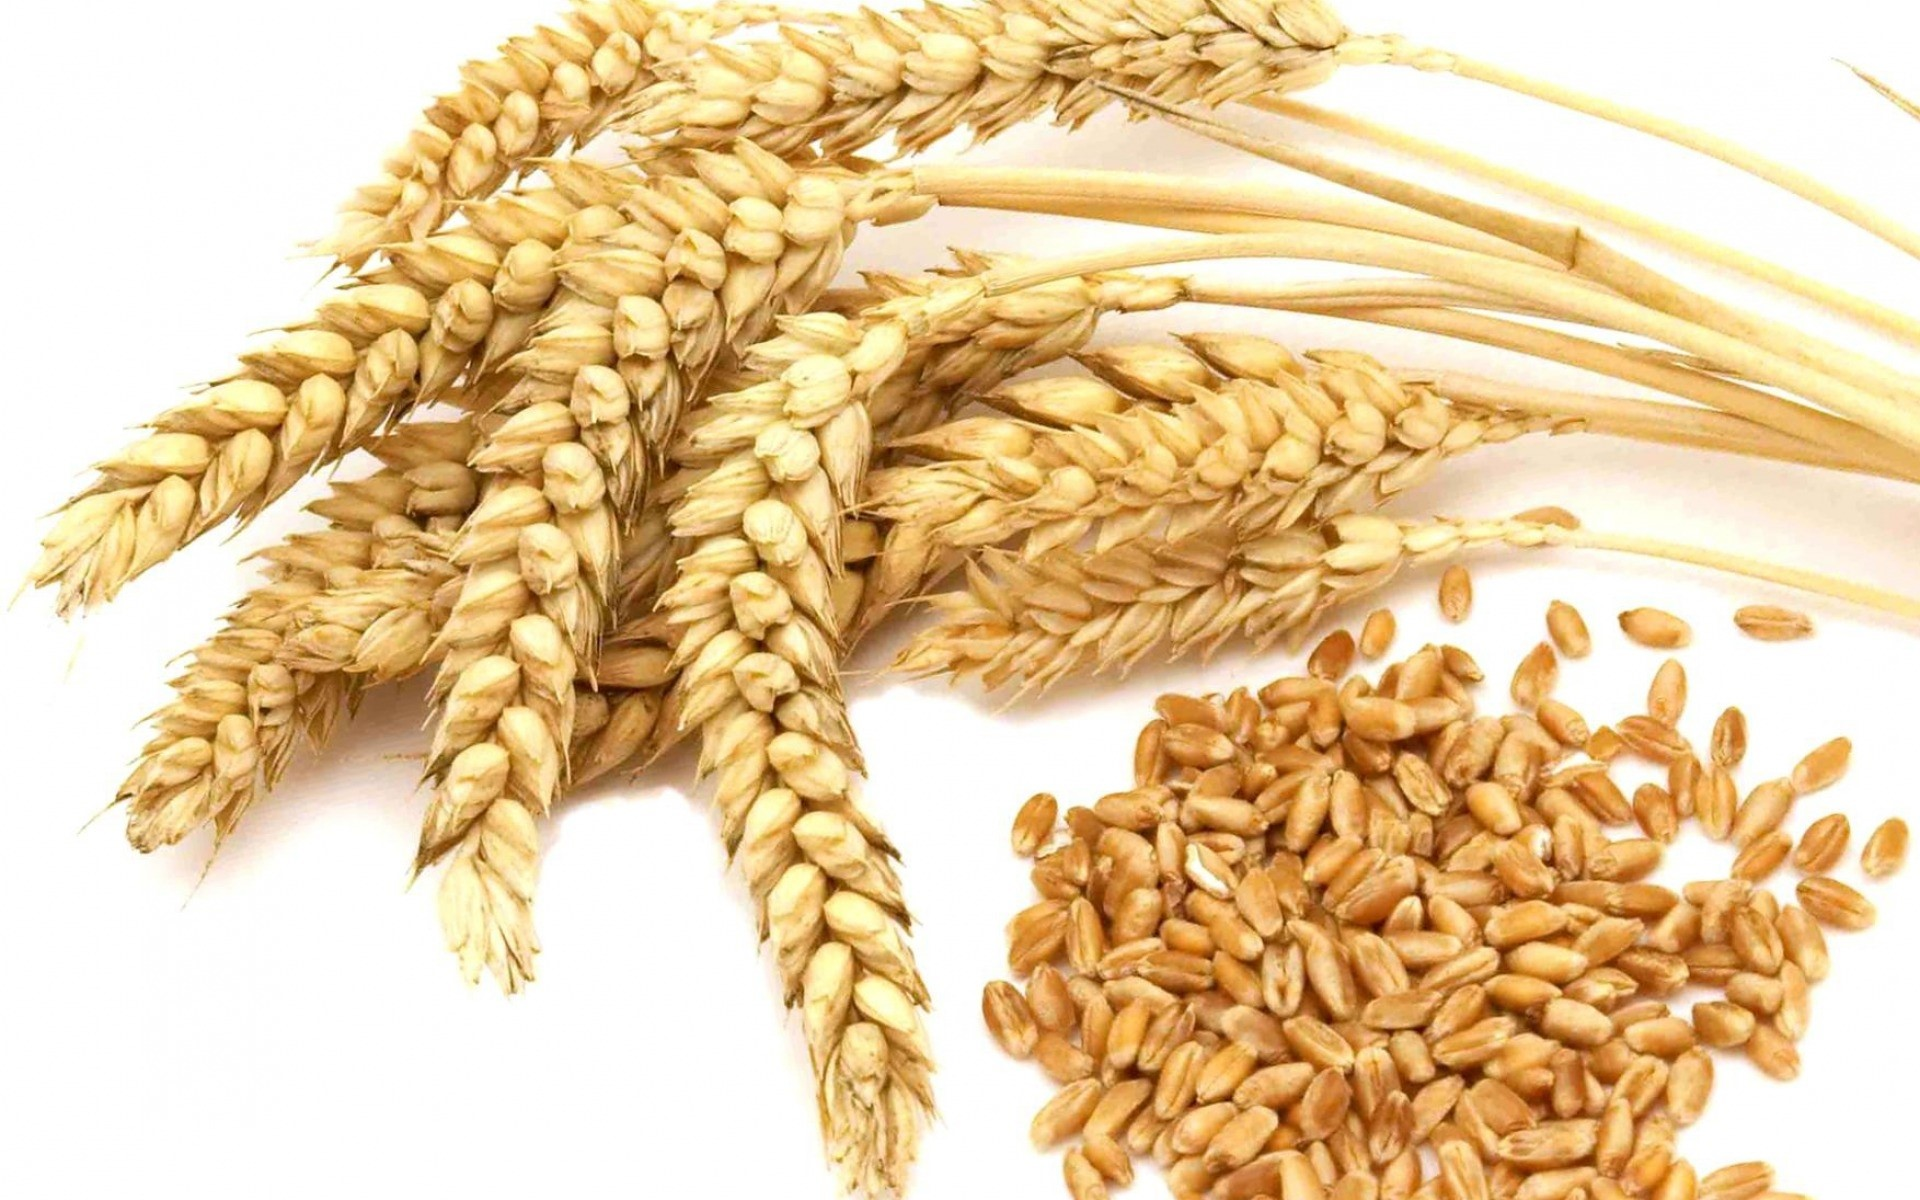 Wheat Market Report, Price Analysis, Size, Share, Industry Growth, Trends, Outlook, Forecast 2020-2025